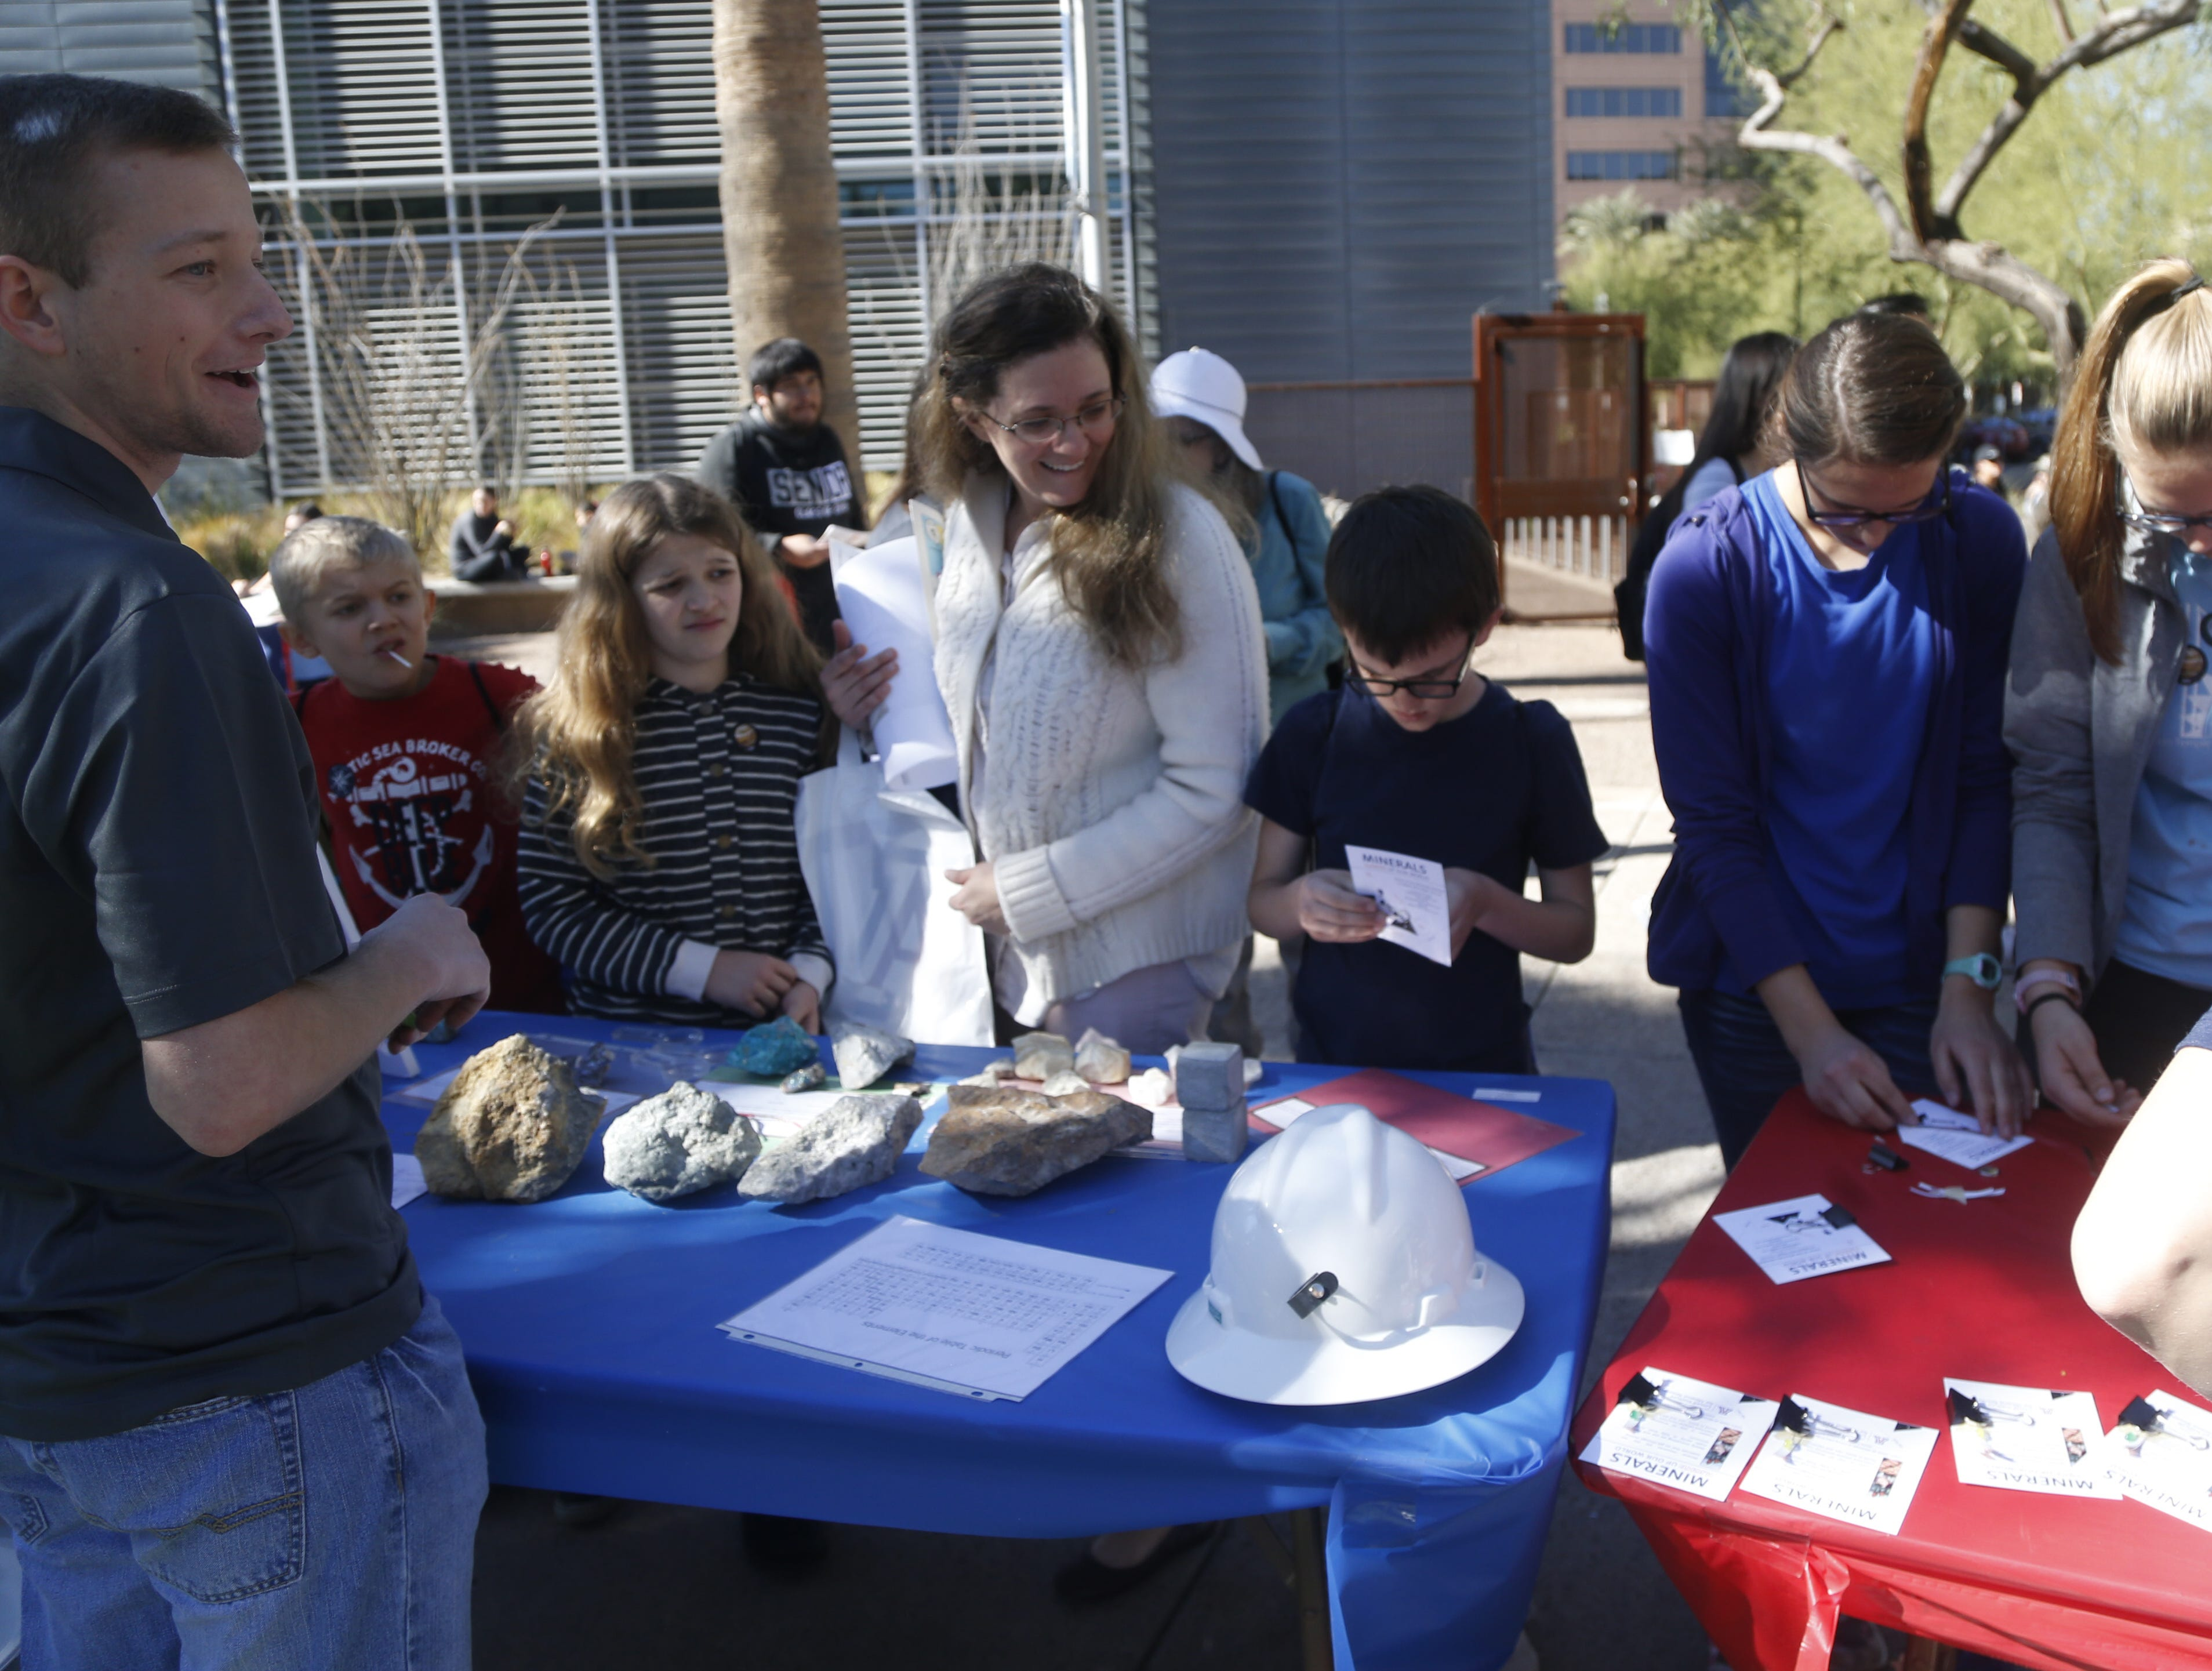 Children and adults explore the booths during a STEM outreach event in downtown Phoenix, Ariz. on January 26, 2019.